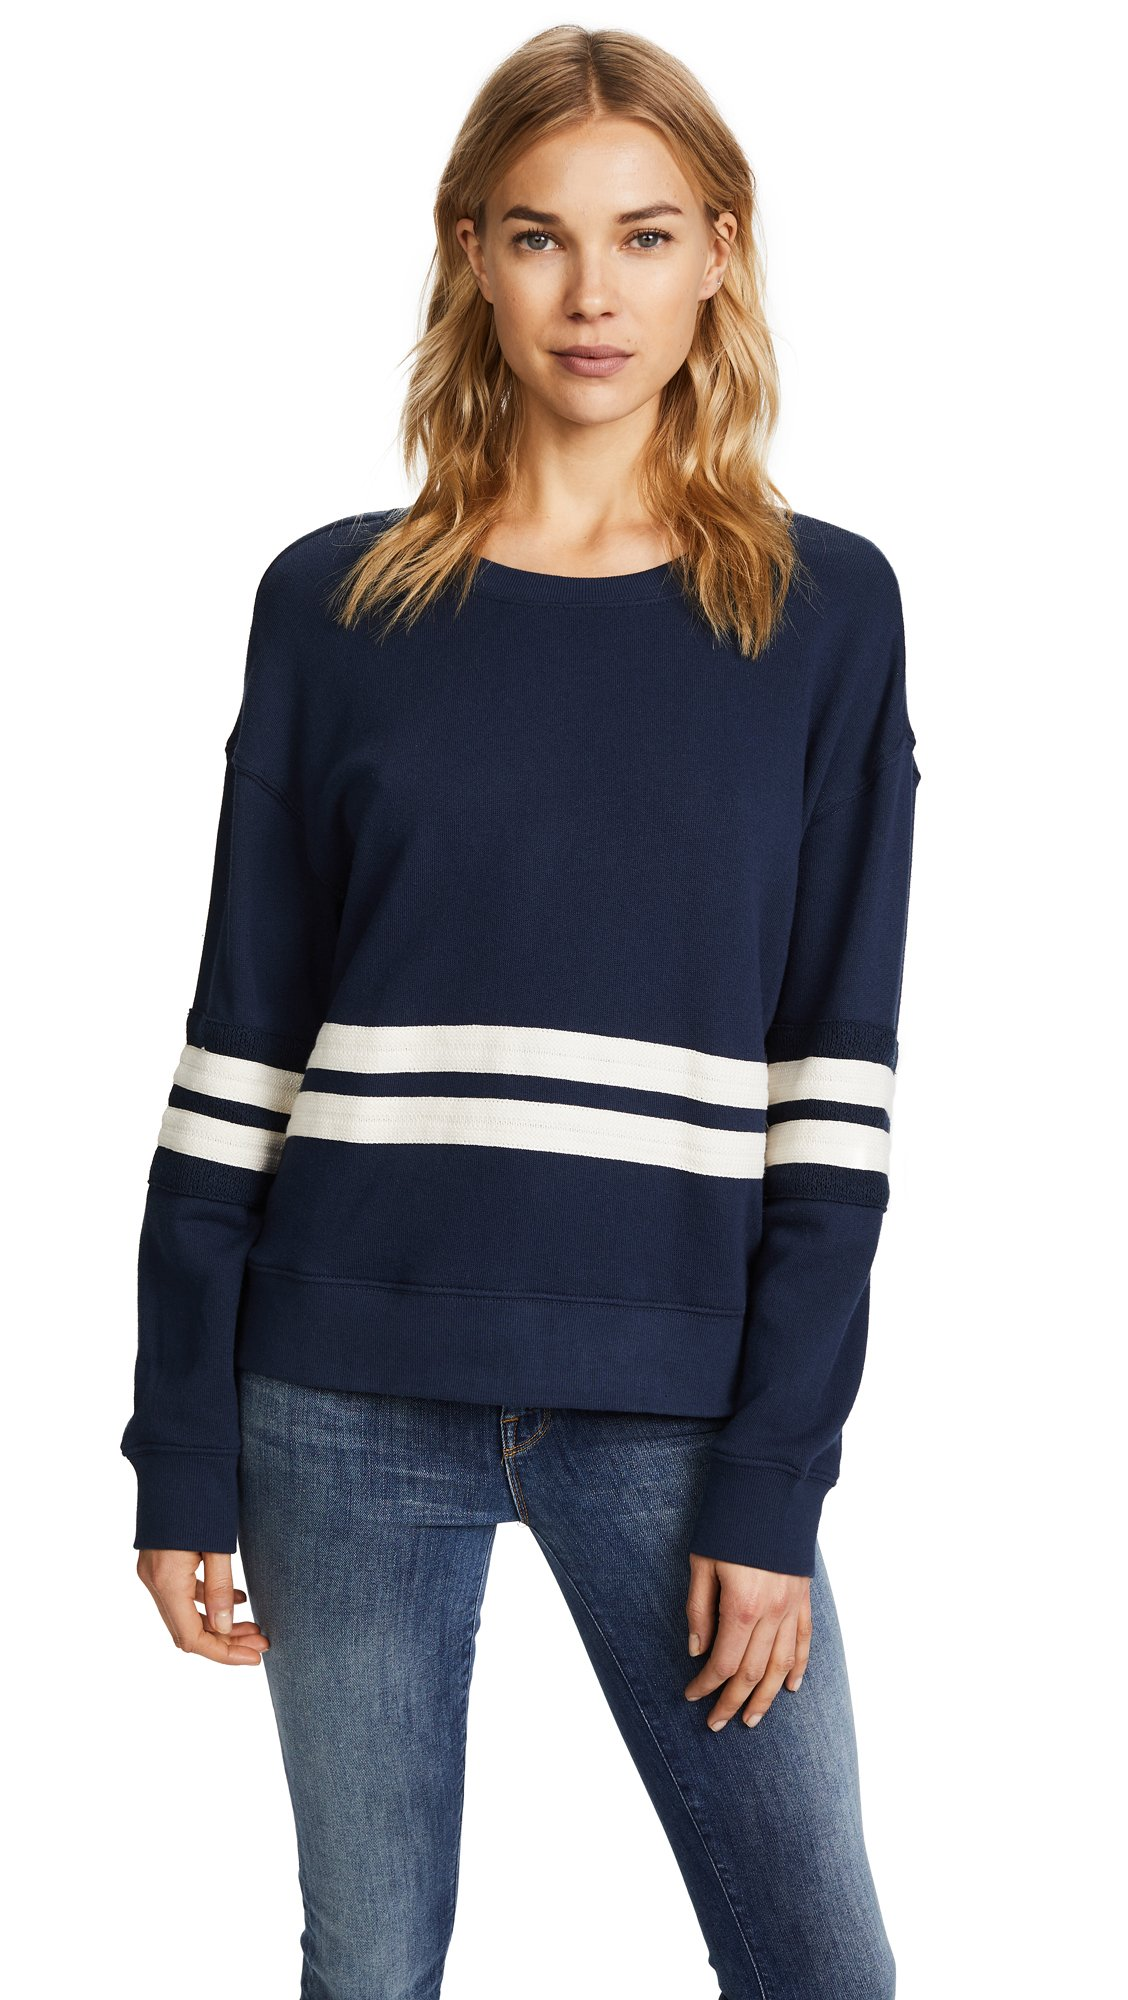 Splendid Women's Seabrook Active Pullover, Navy/Off White, XS by Splendid